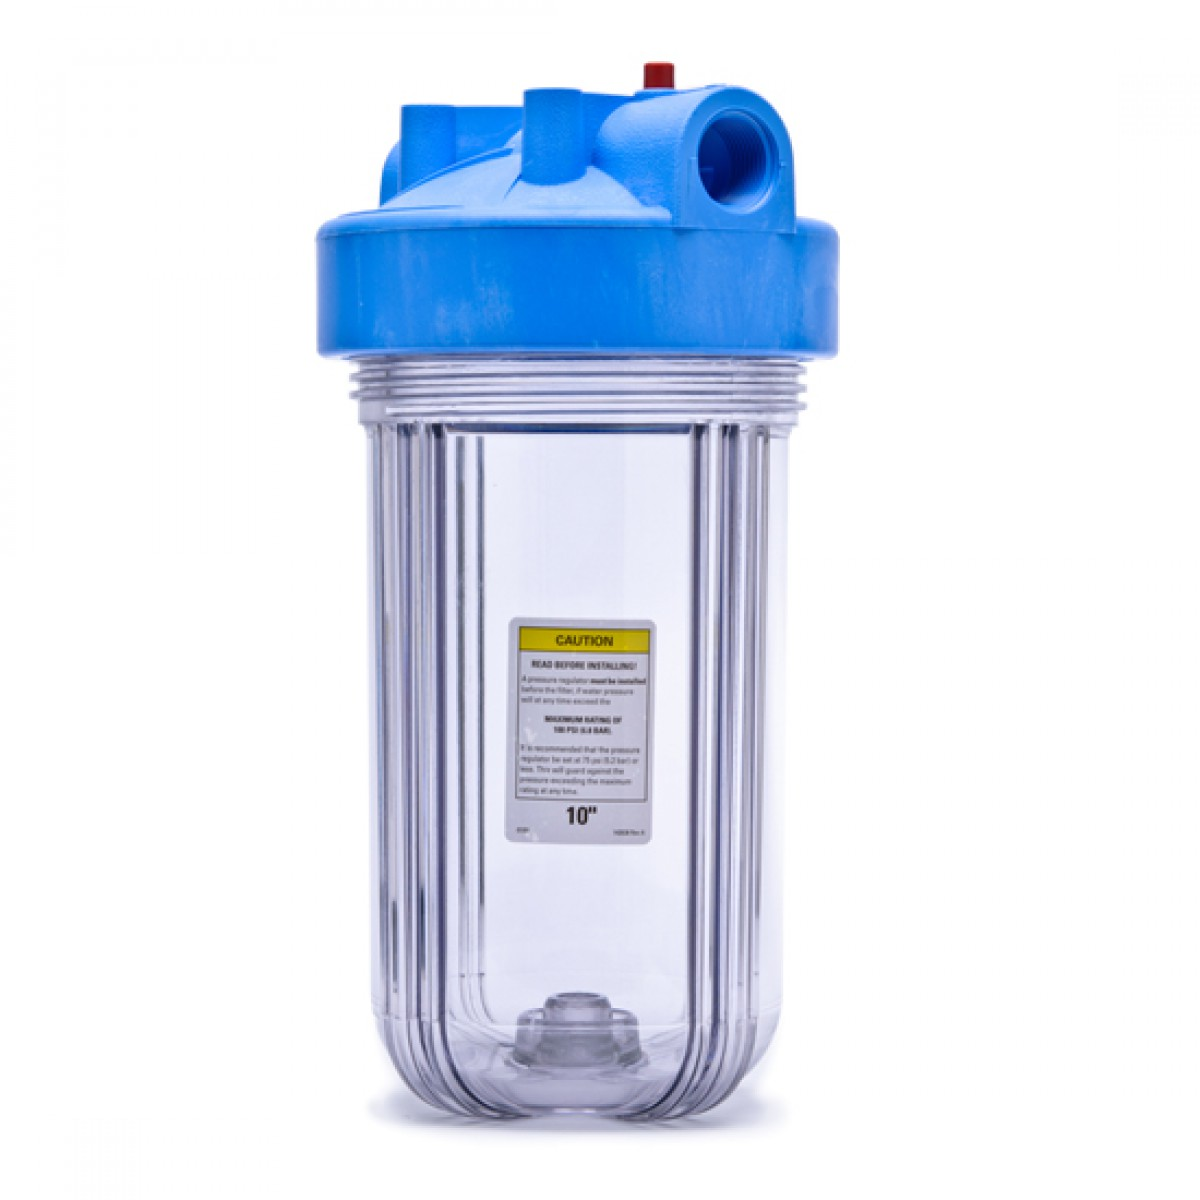 Pentek Big Clear Lx 10 Whole House Water Filter 10 In Housing